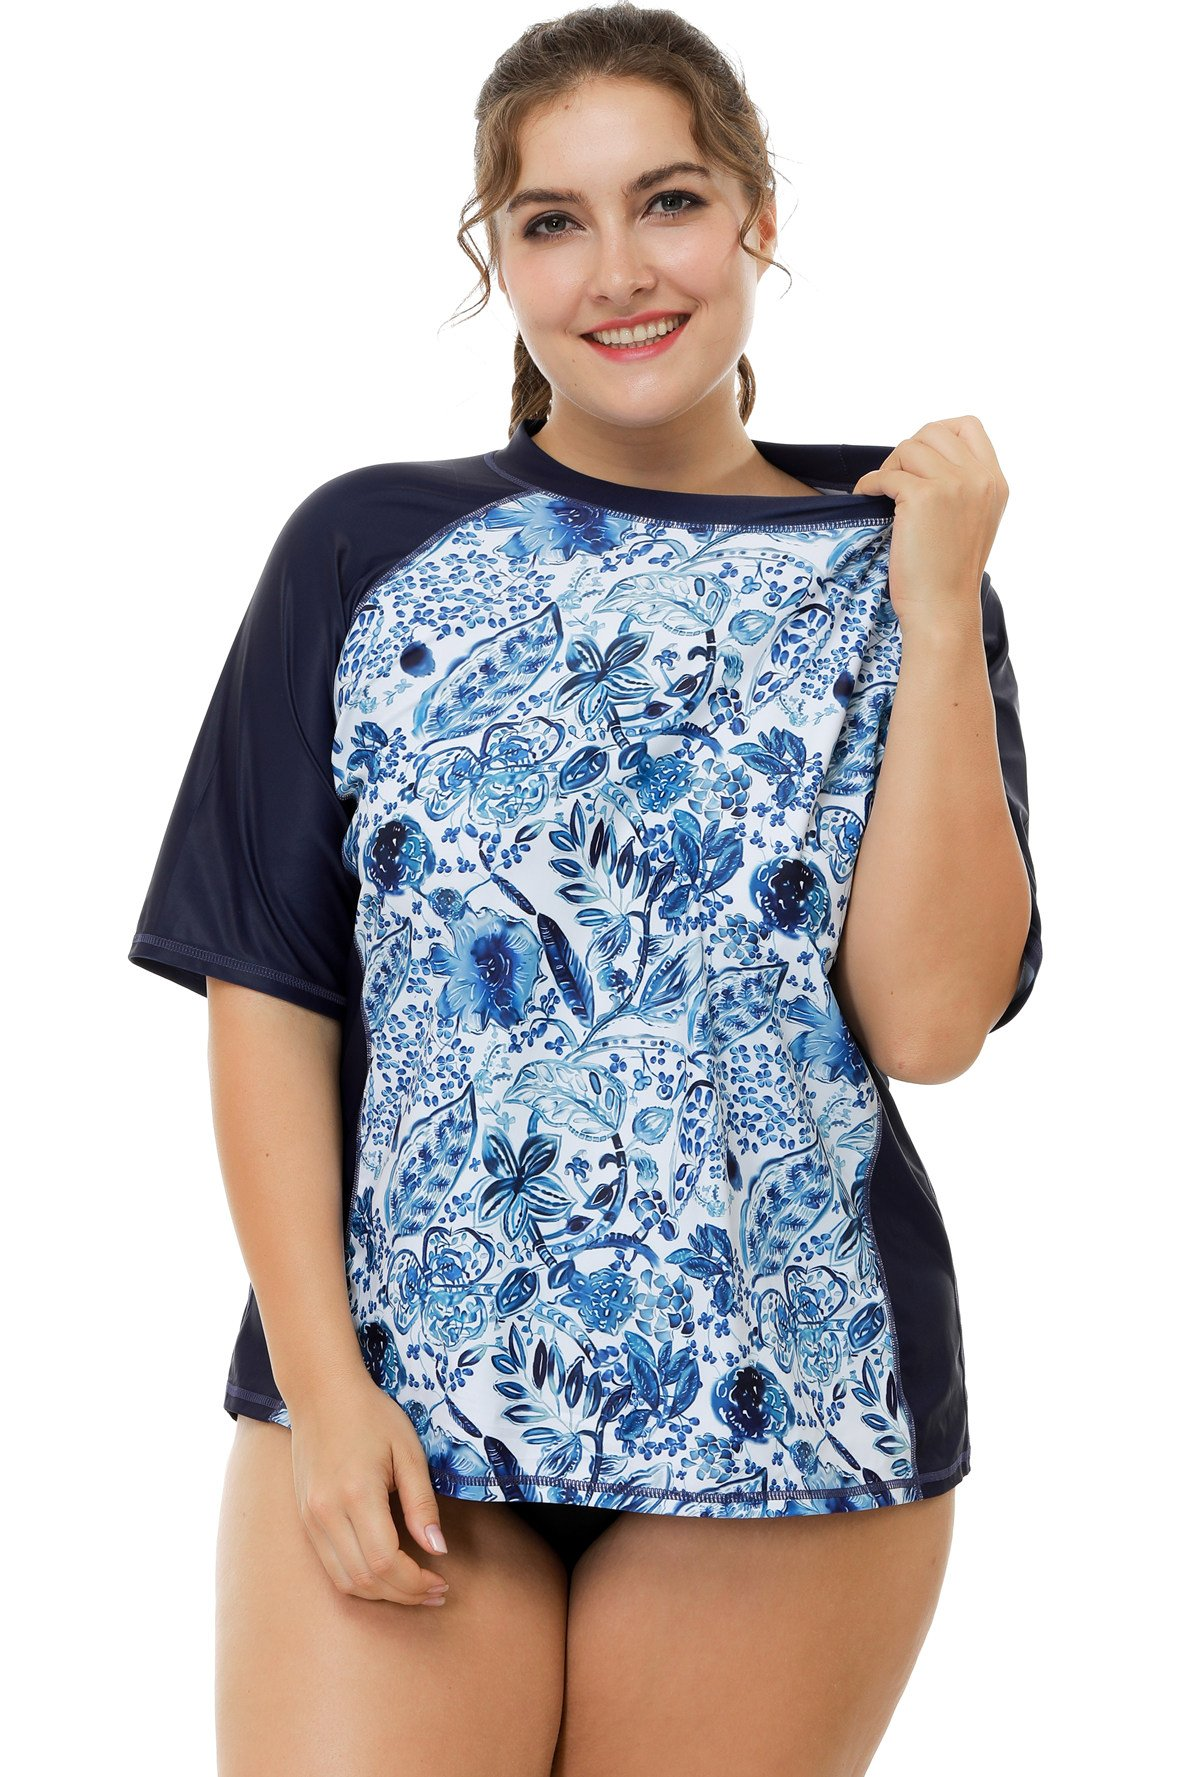 ATTRACO Rashguard for Women Plus Size Sun Protection Shirt Floral Print Navy 3X by ATTRACO